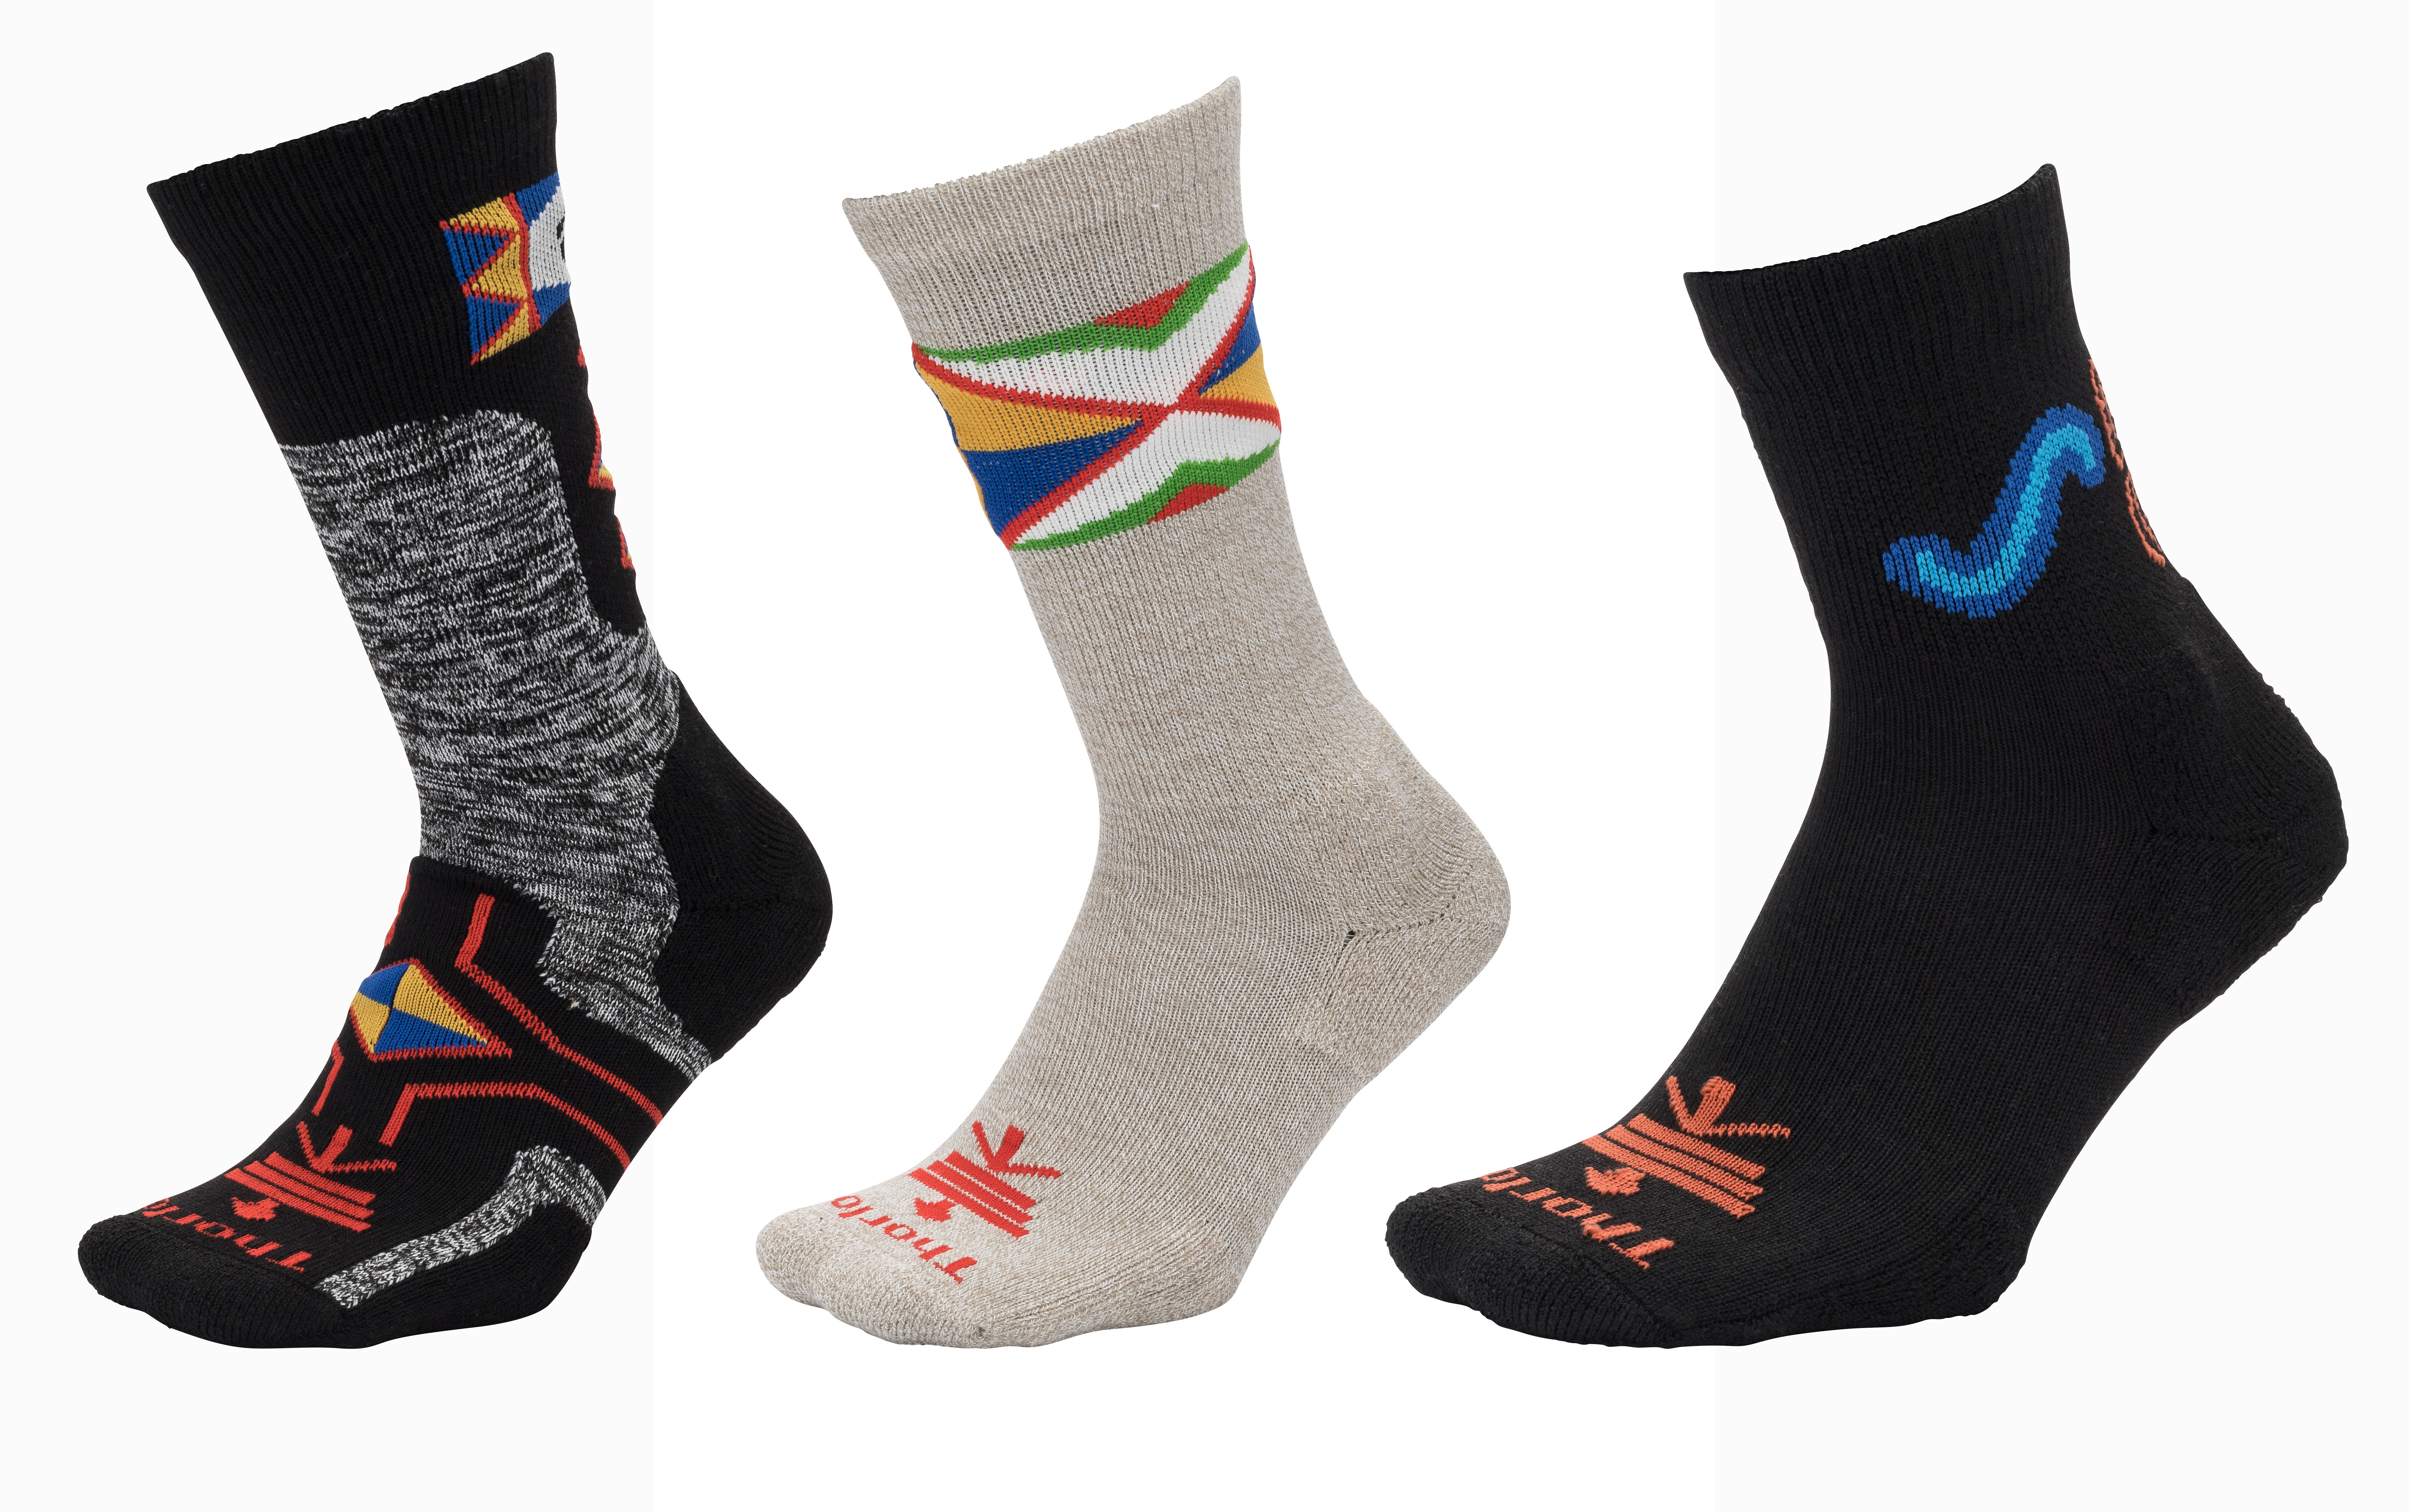 Thorlo First Nation Collection - Native American Designs